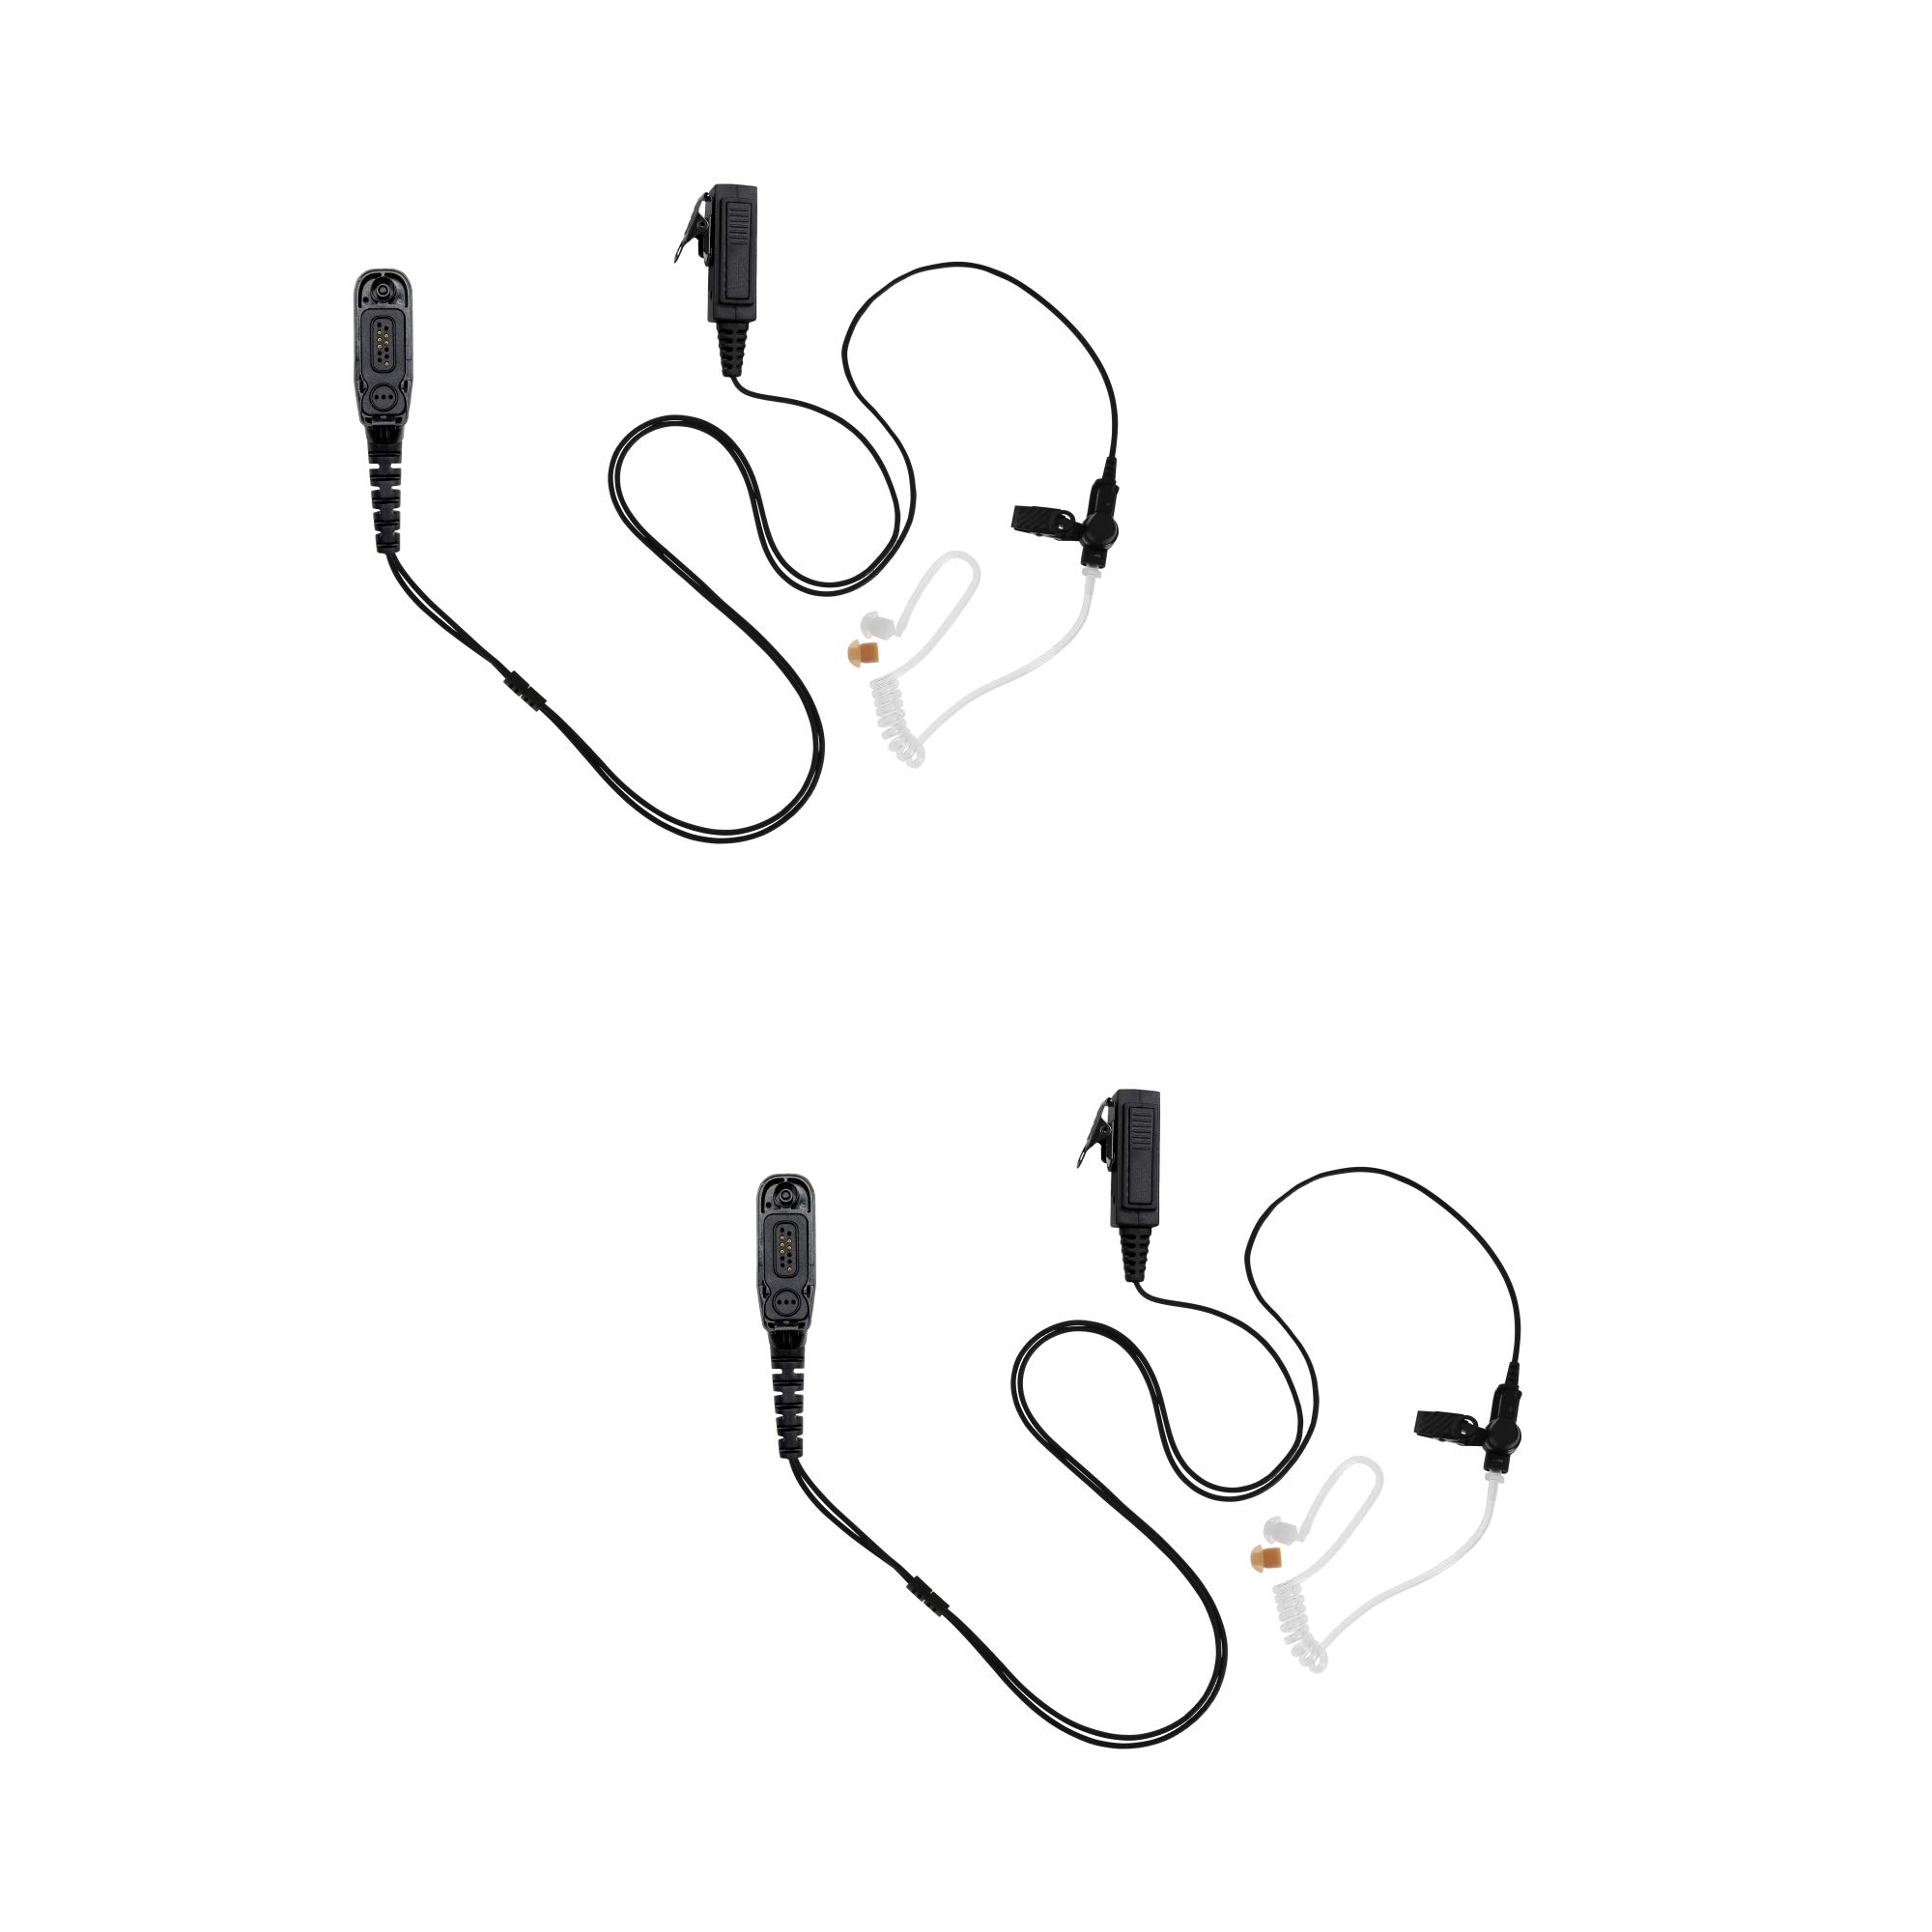 2 Pack Maxtop ASK4038-M9 2-Wire Clear Coil Surveillance Headphone for Motorola MTP850 MOTOTRBO XPR-6550 XPR-7580